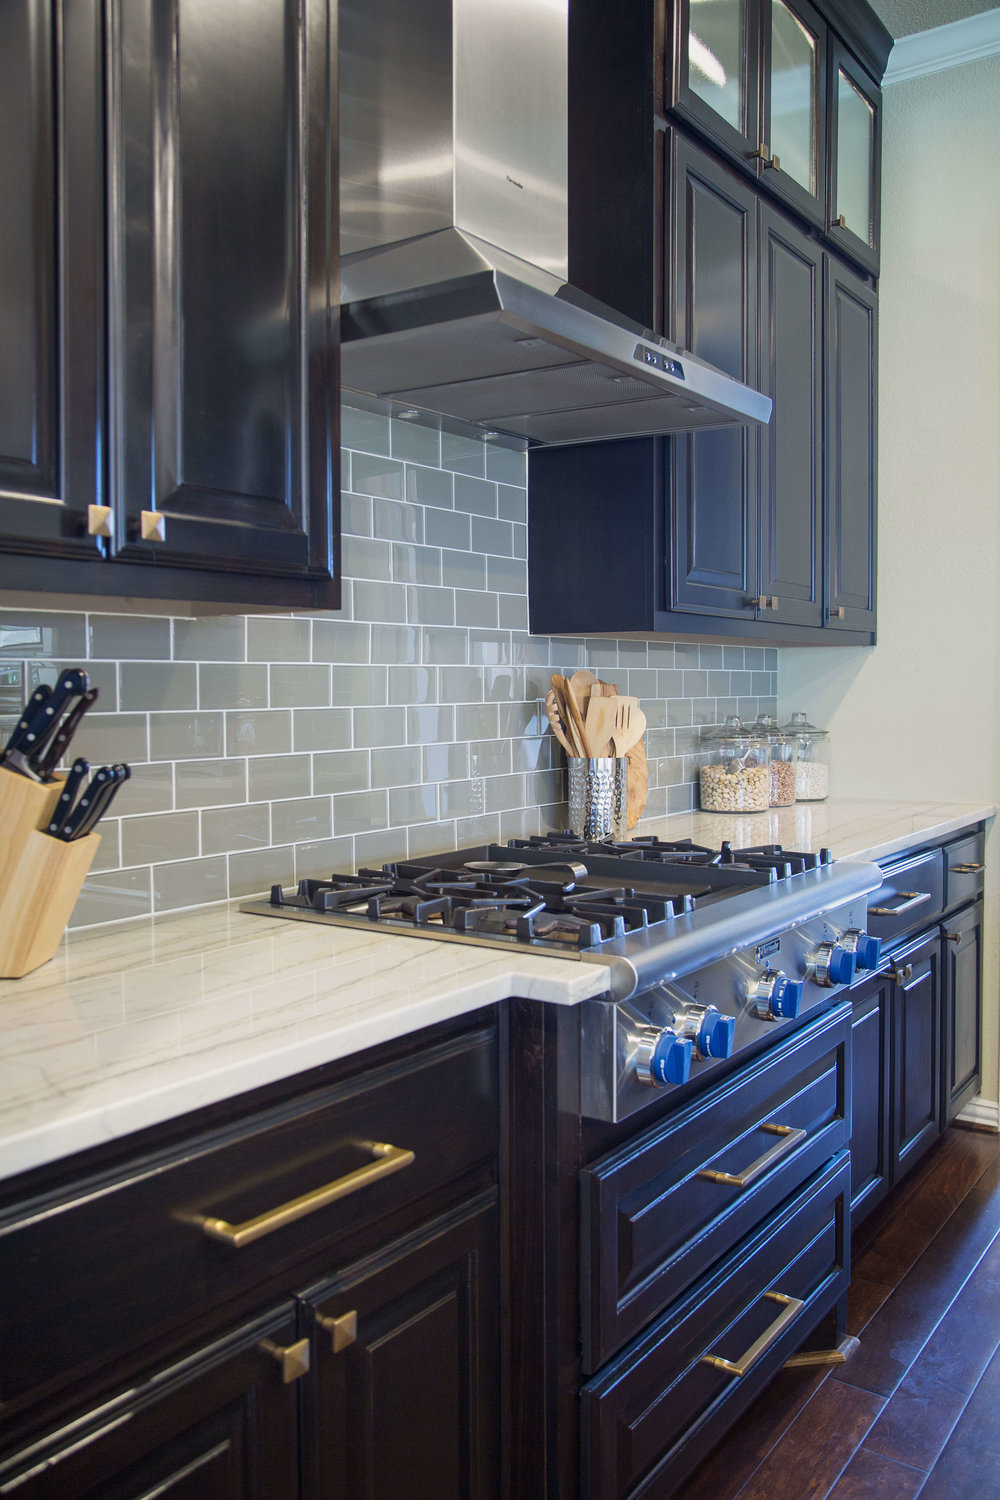 Macabus White quartzite countertops with solid color glass tile backsplash | Designer: Carla Aston, Photographer: Tori Aston #macabuswhite #quartzitecountertops #glasstile